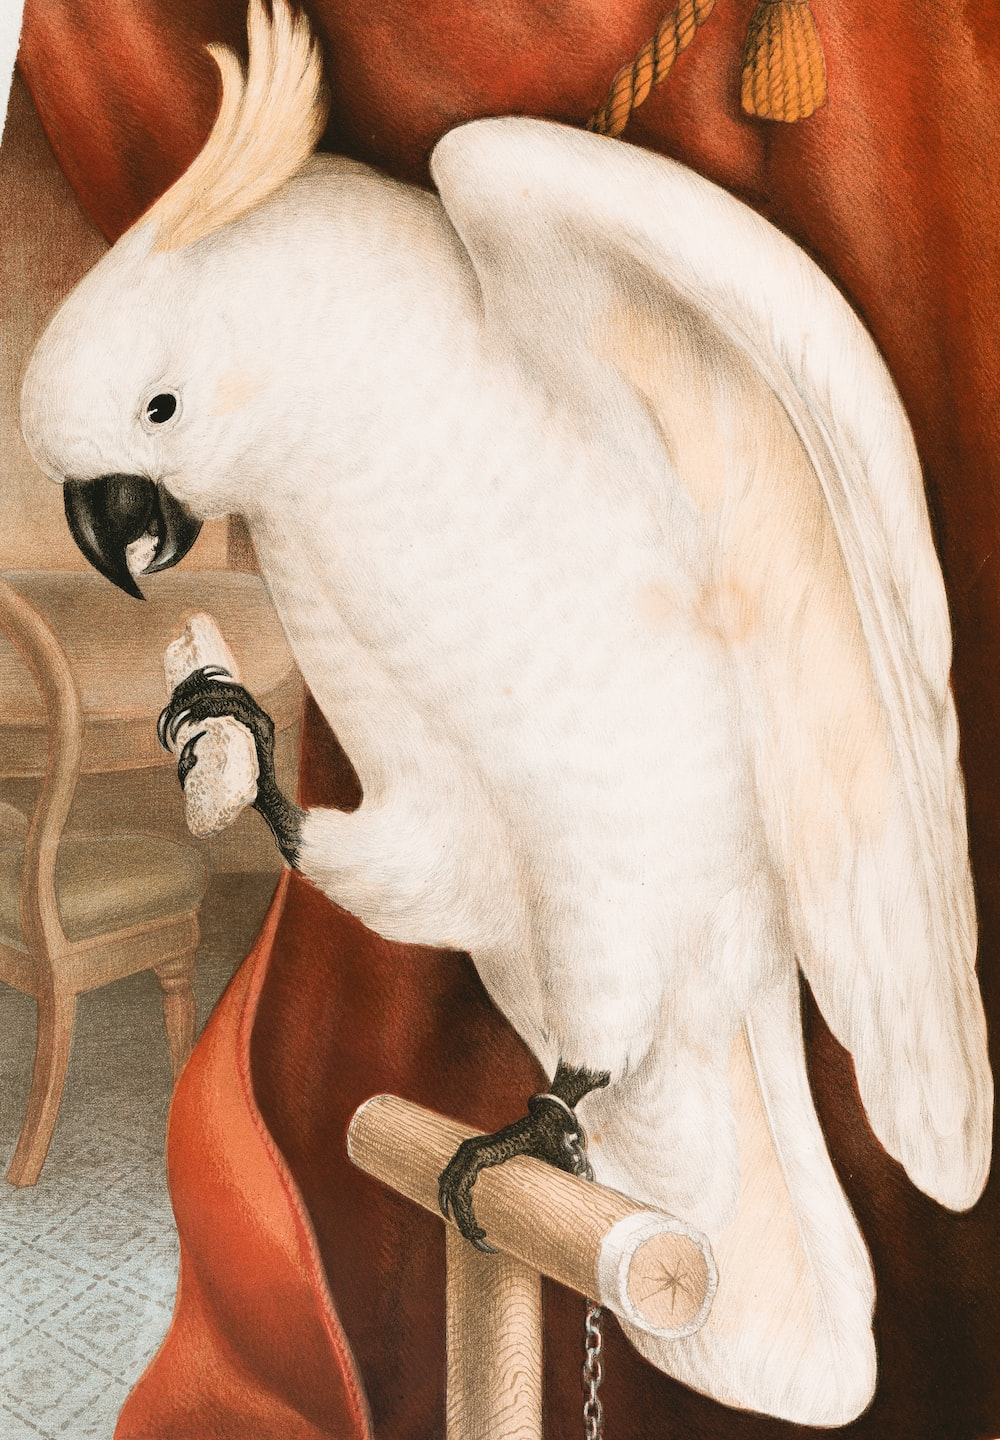 white bird on brown wooden table